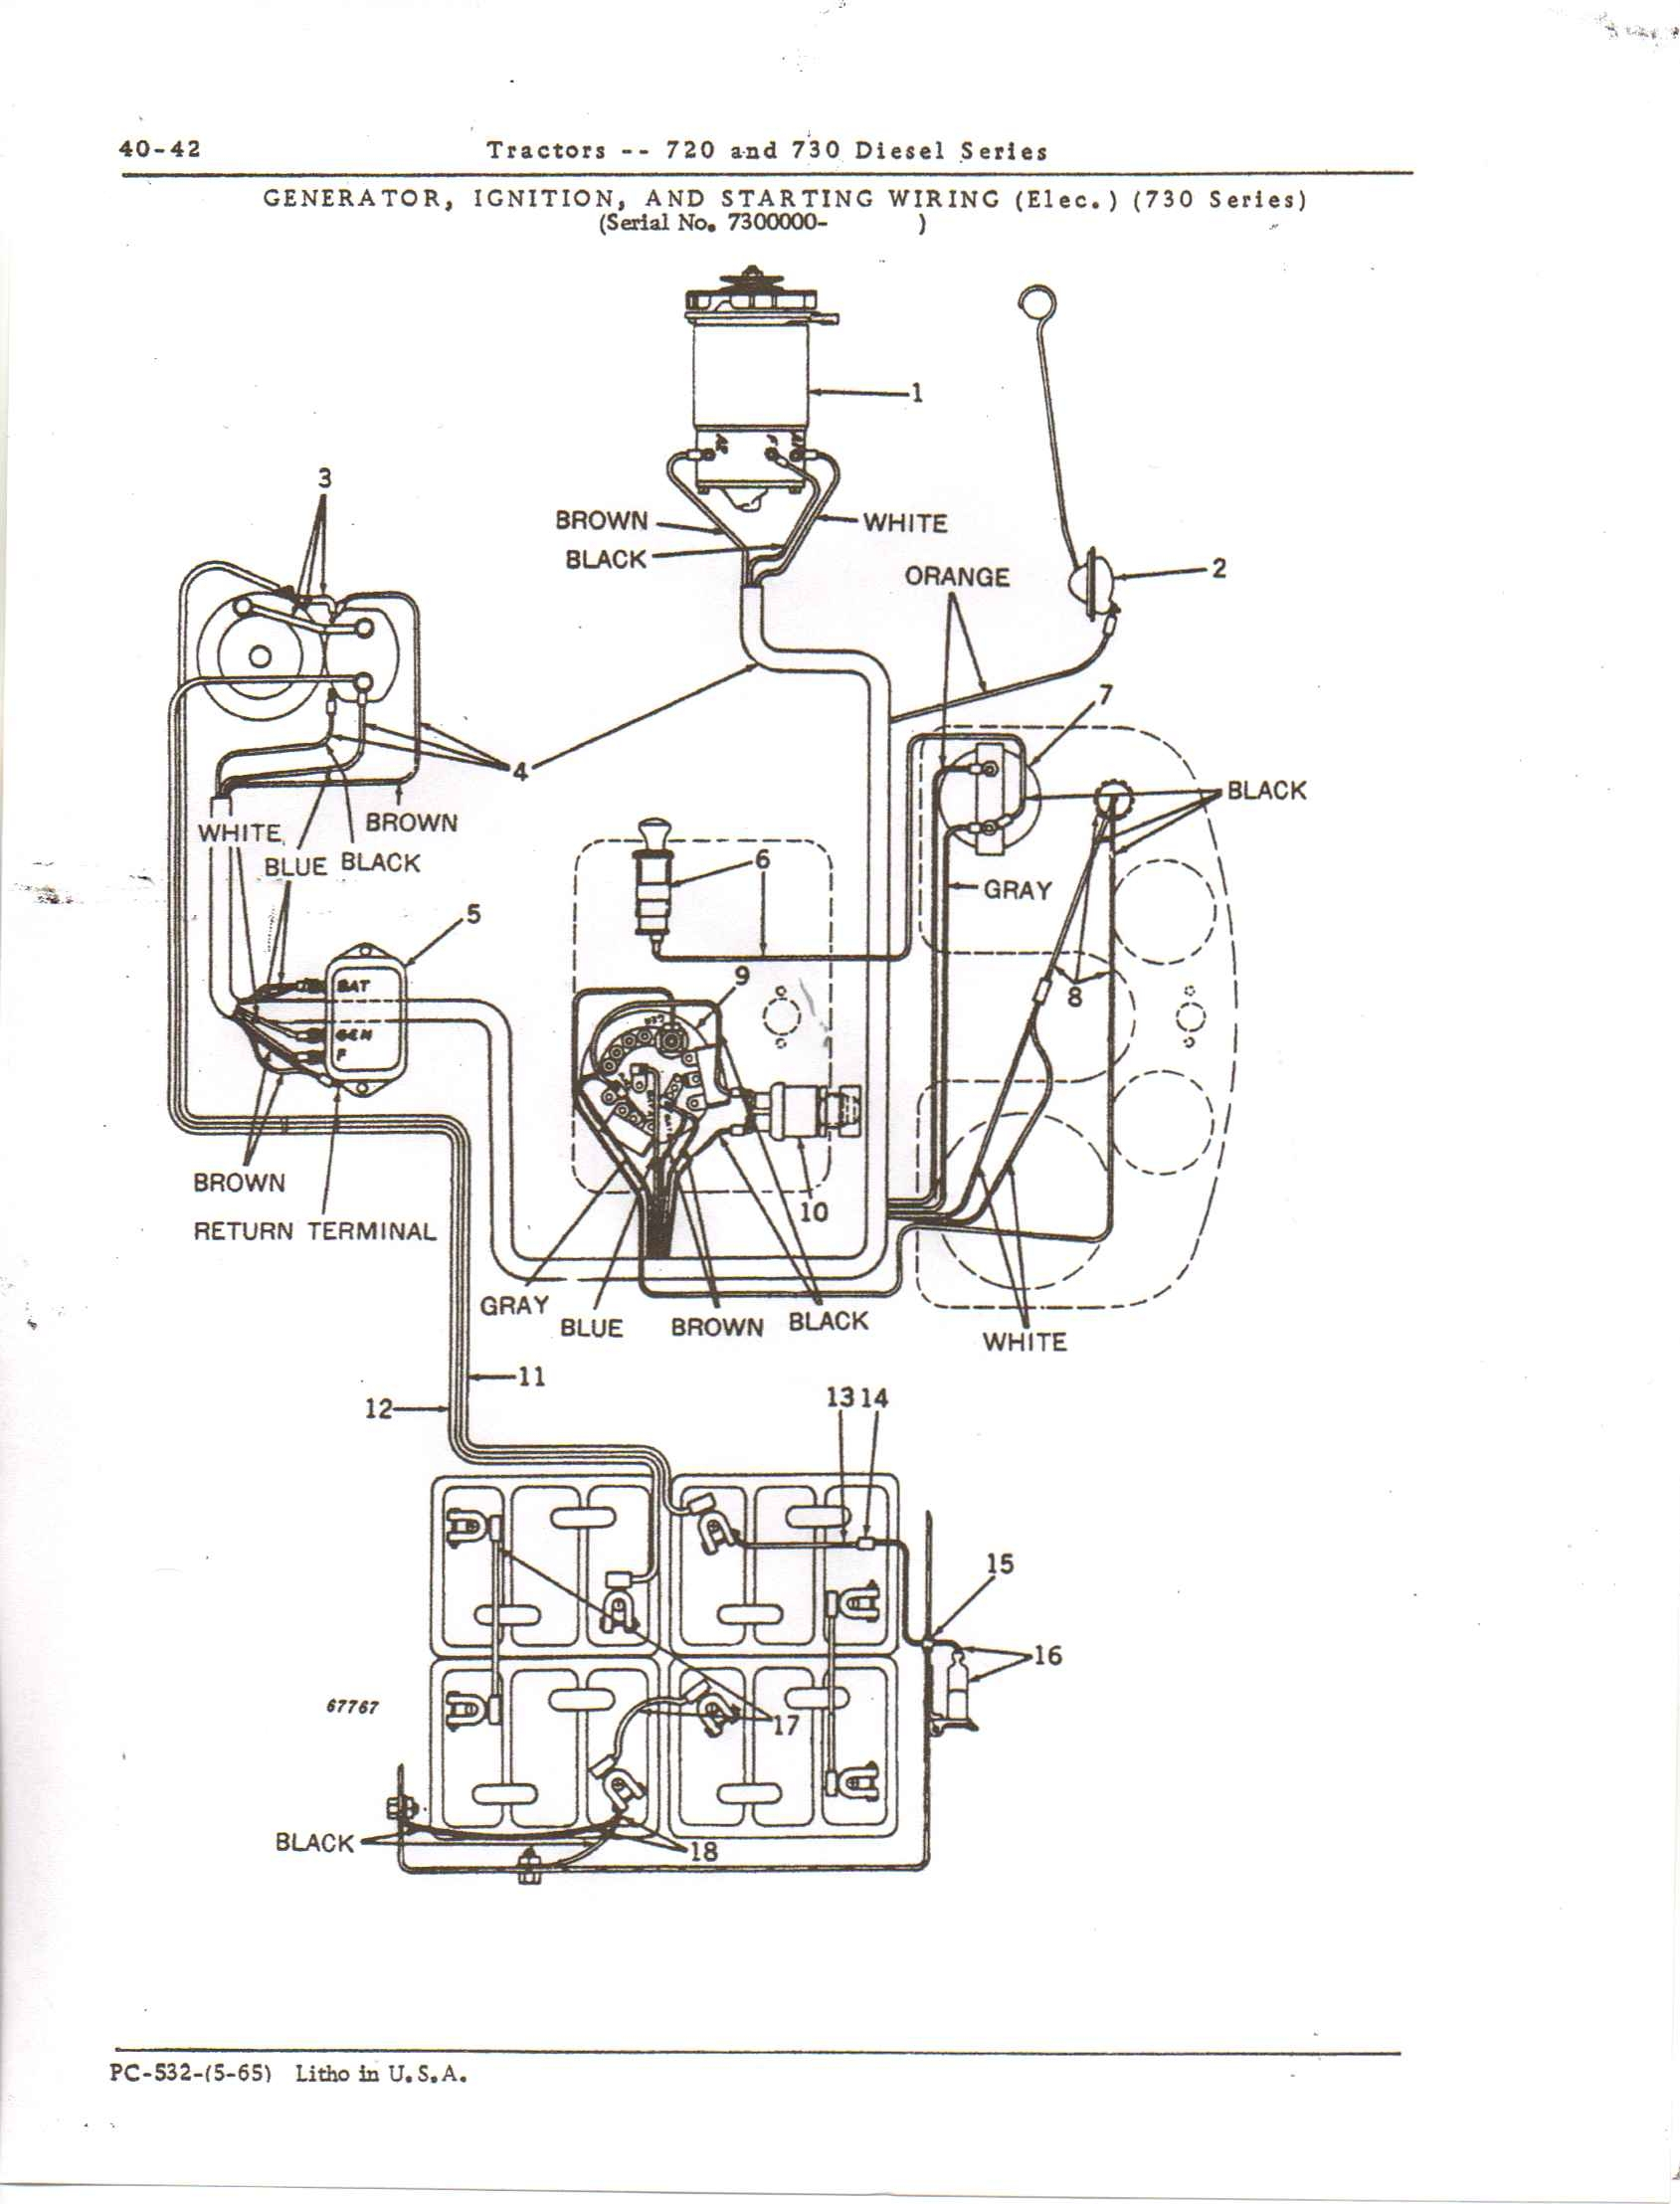 John Deere 4020 Wiring Diagram Moreover John Deere 3010 Wiring Diagram